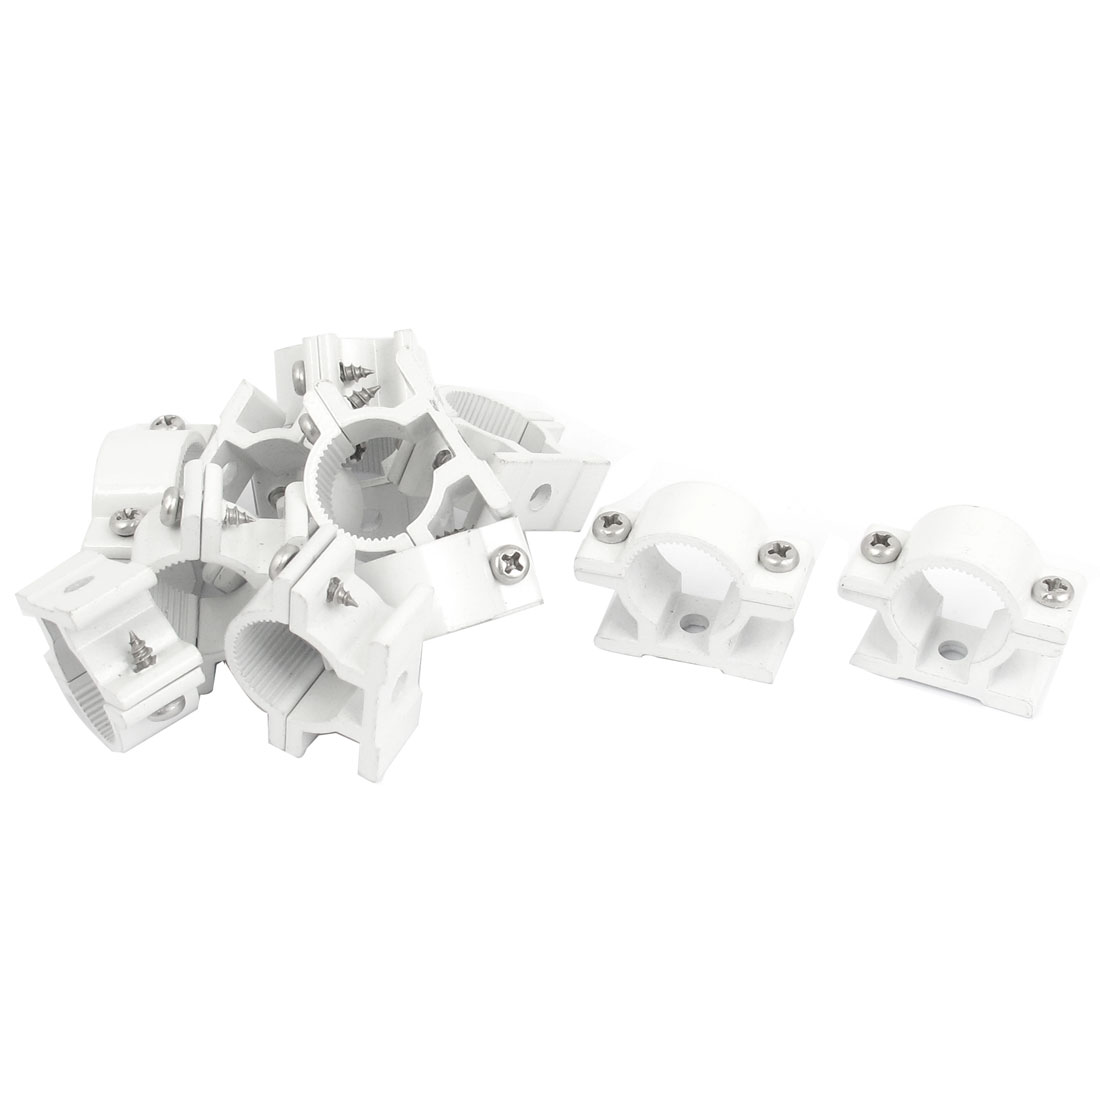 12 Pcs 20mm Diameter Water Supply Pipe Clamps Screw Clips Fitting White